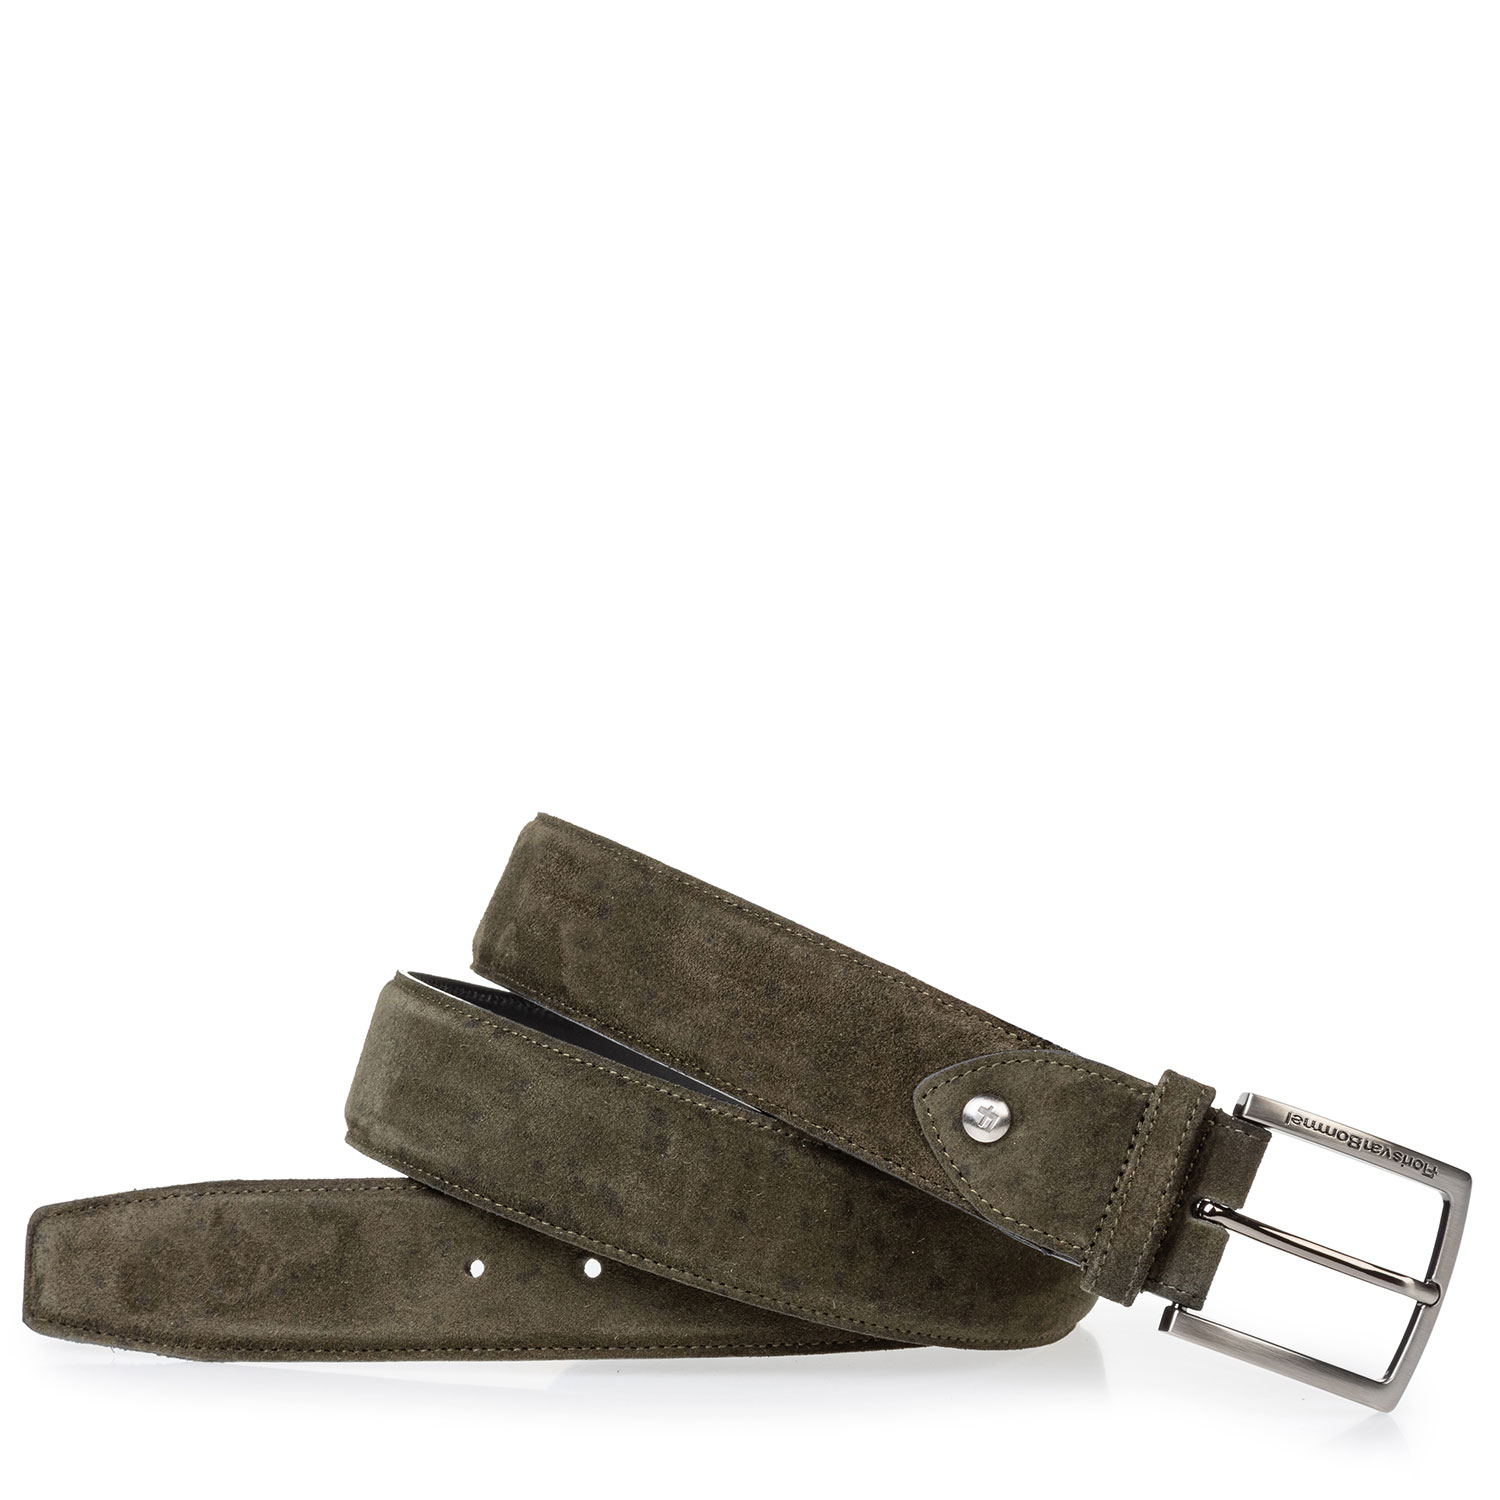 75202/95 - Suede leather belt green black